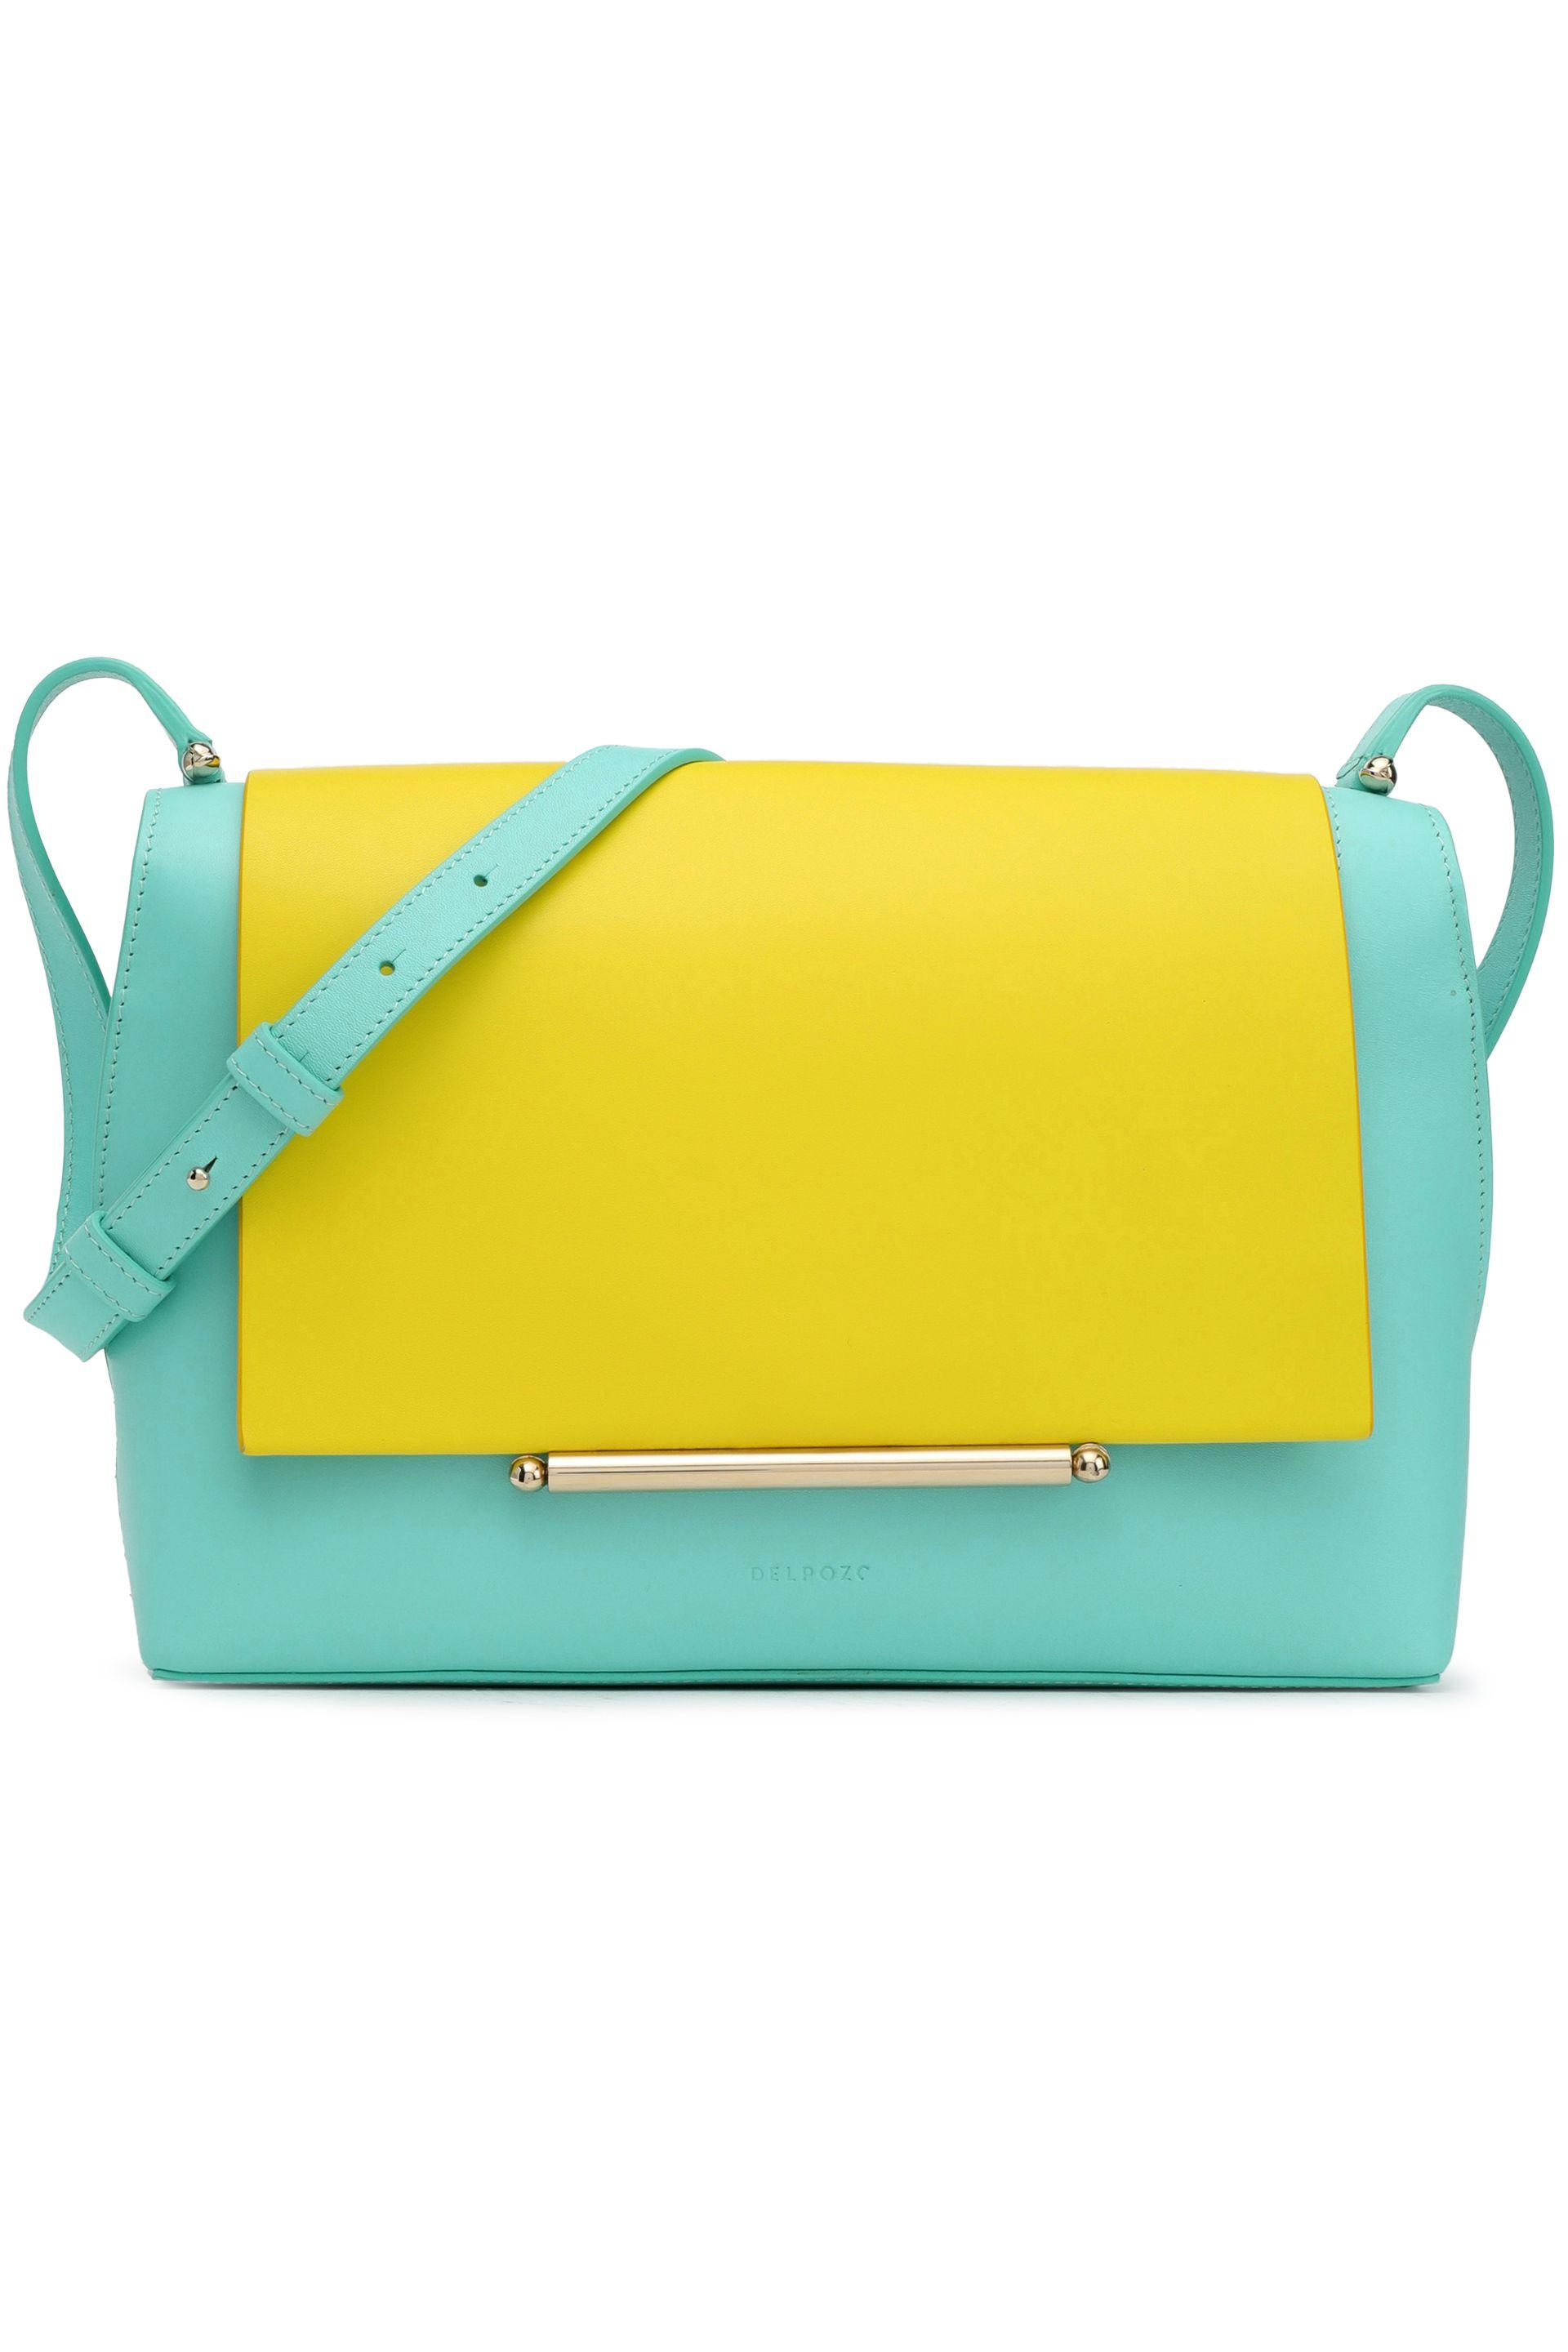 Lyst - Delpozo Woman Bo Leather Shoulder Bag Turquoise in Blue 24ee0d4919fe3